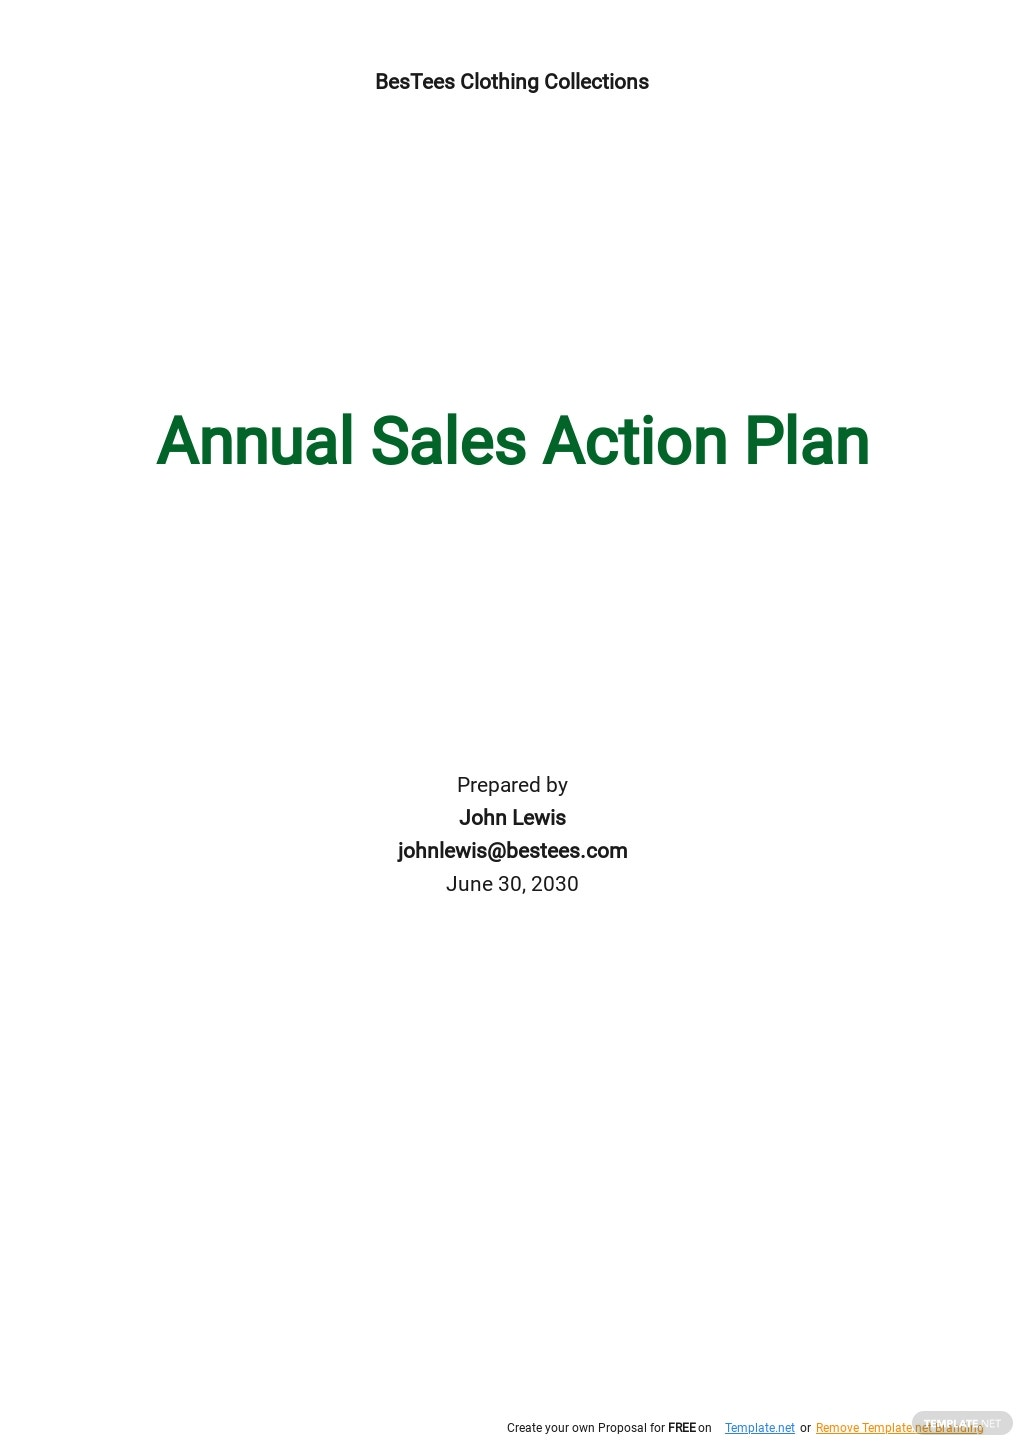 Yearly Sales Action Plan Template.jpe